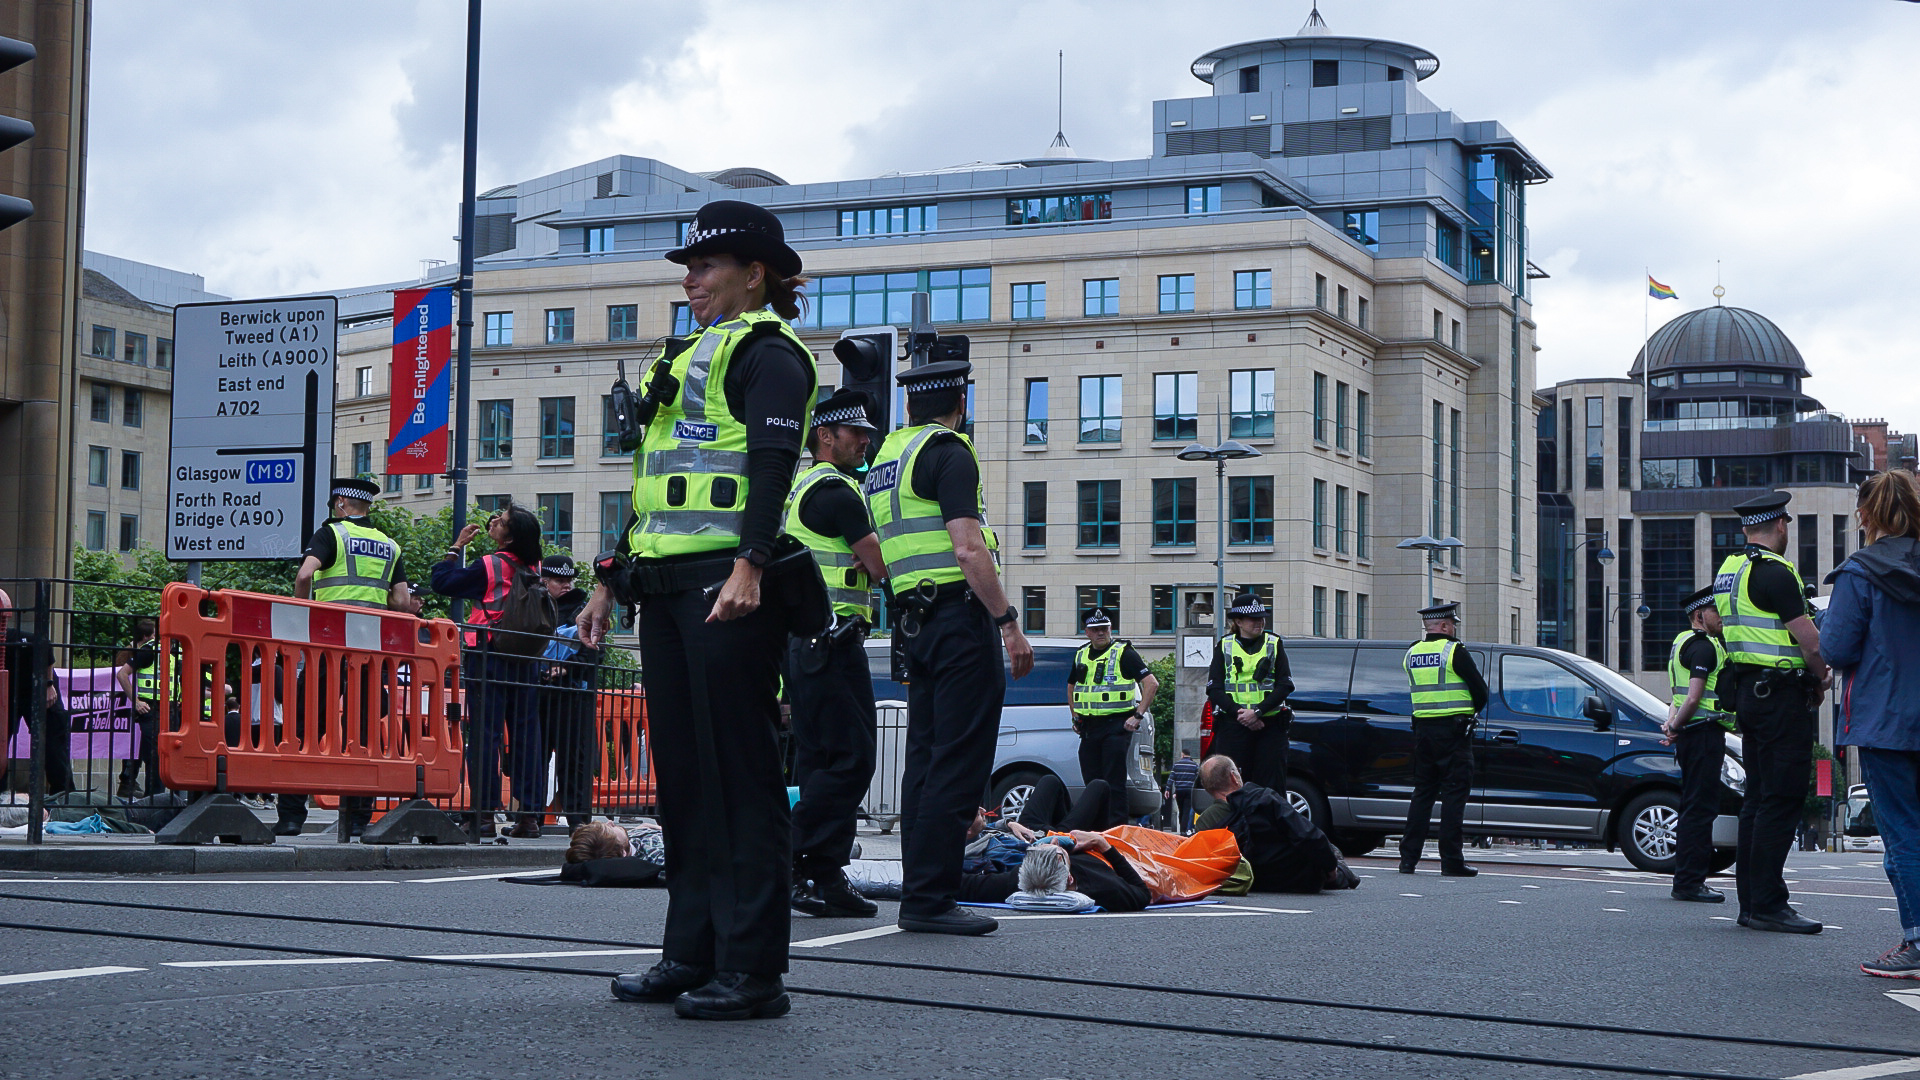 An alarming number of police surround activists who have laid down in the road.